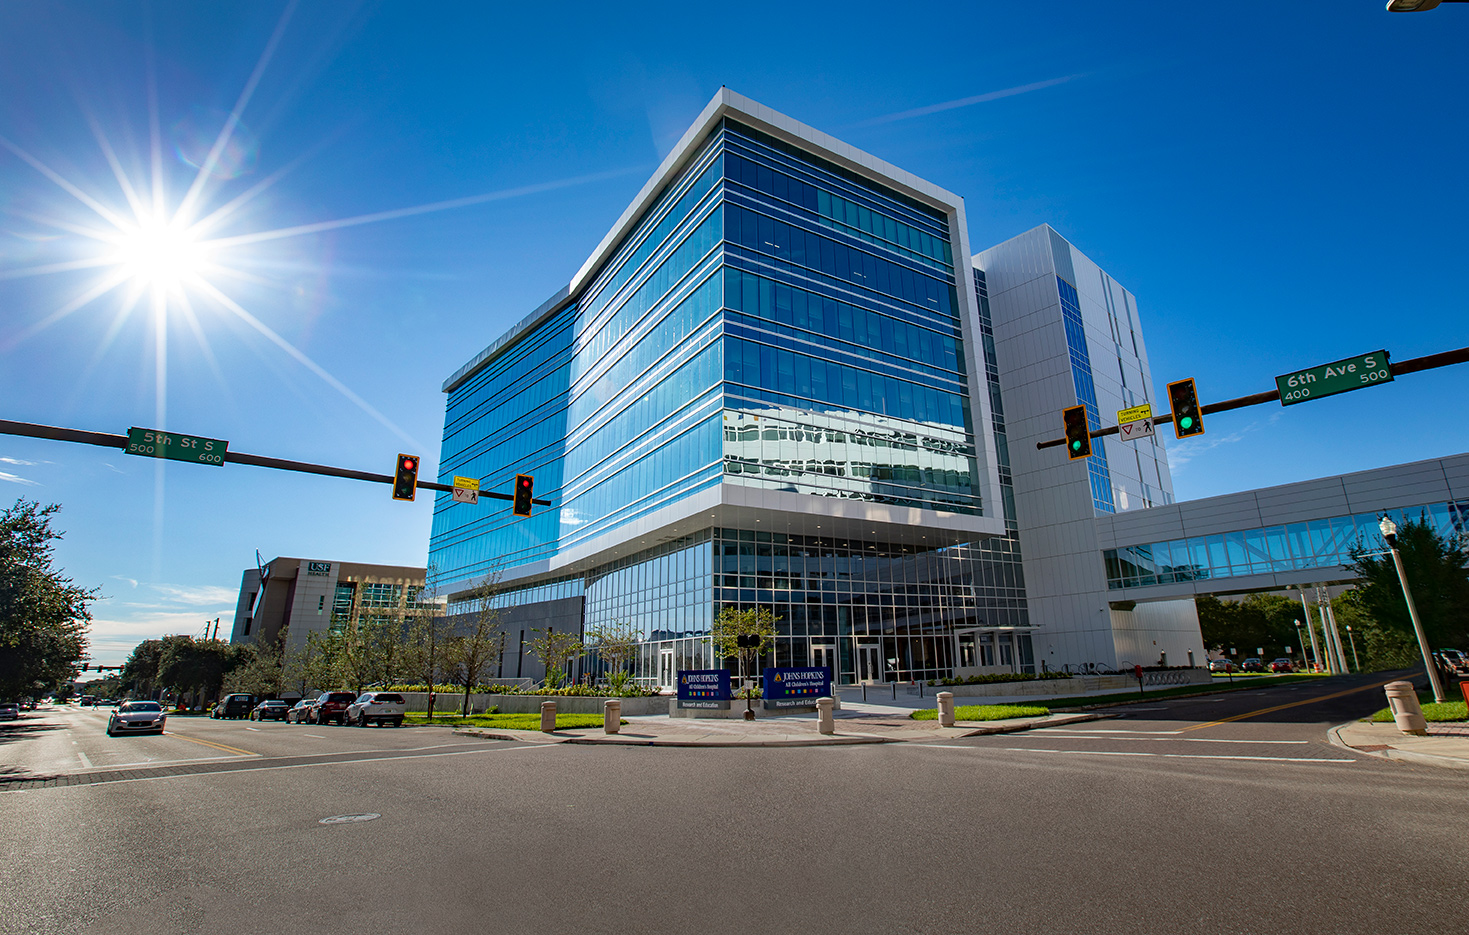 An exterior shot of the Johns Hopkins All Children's Hospital Research building on a sunny day